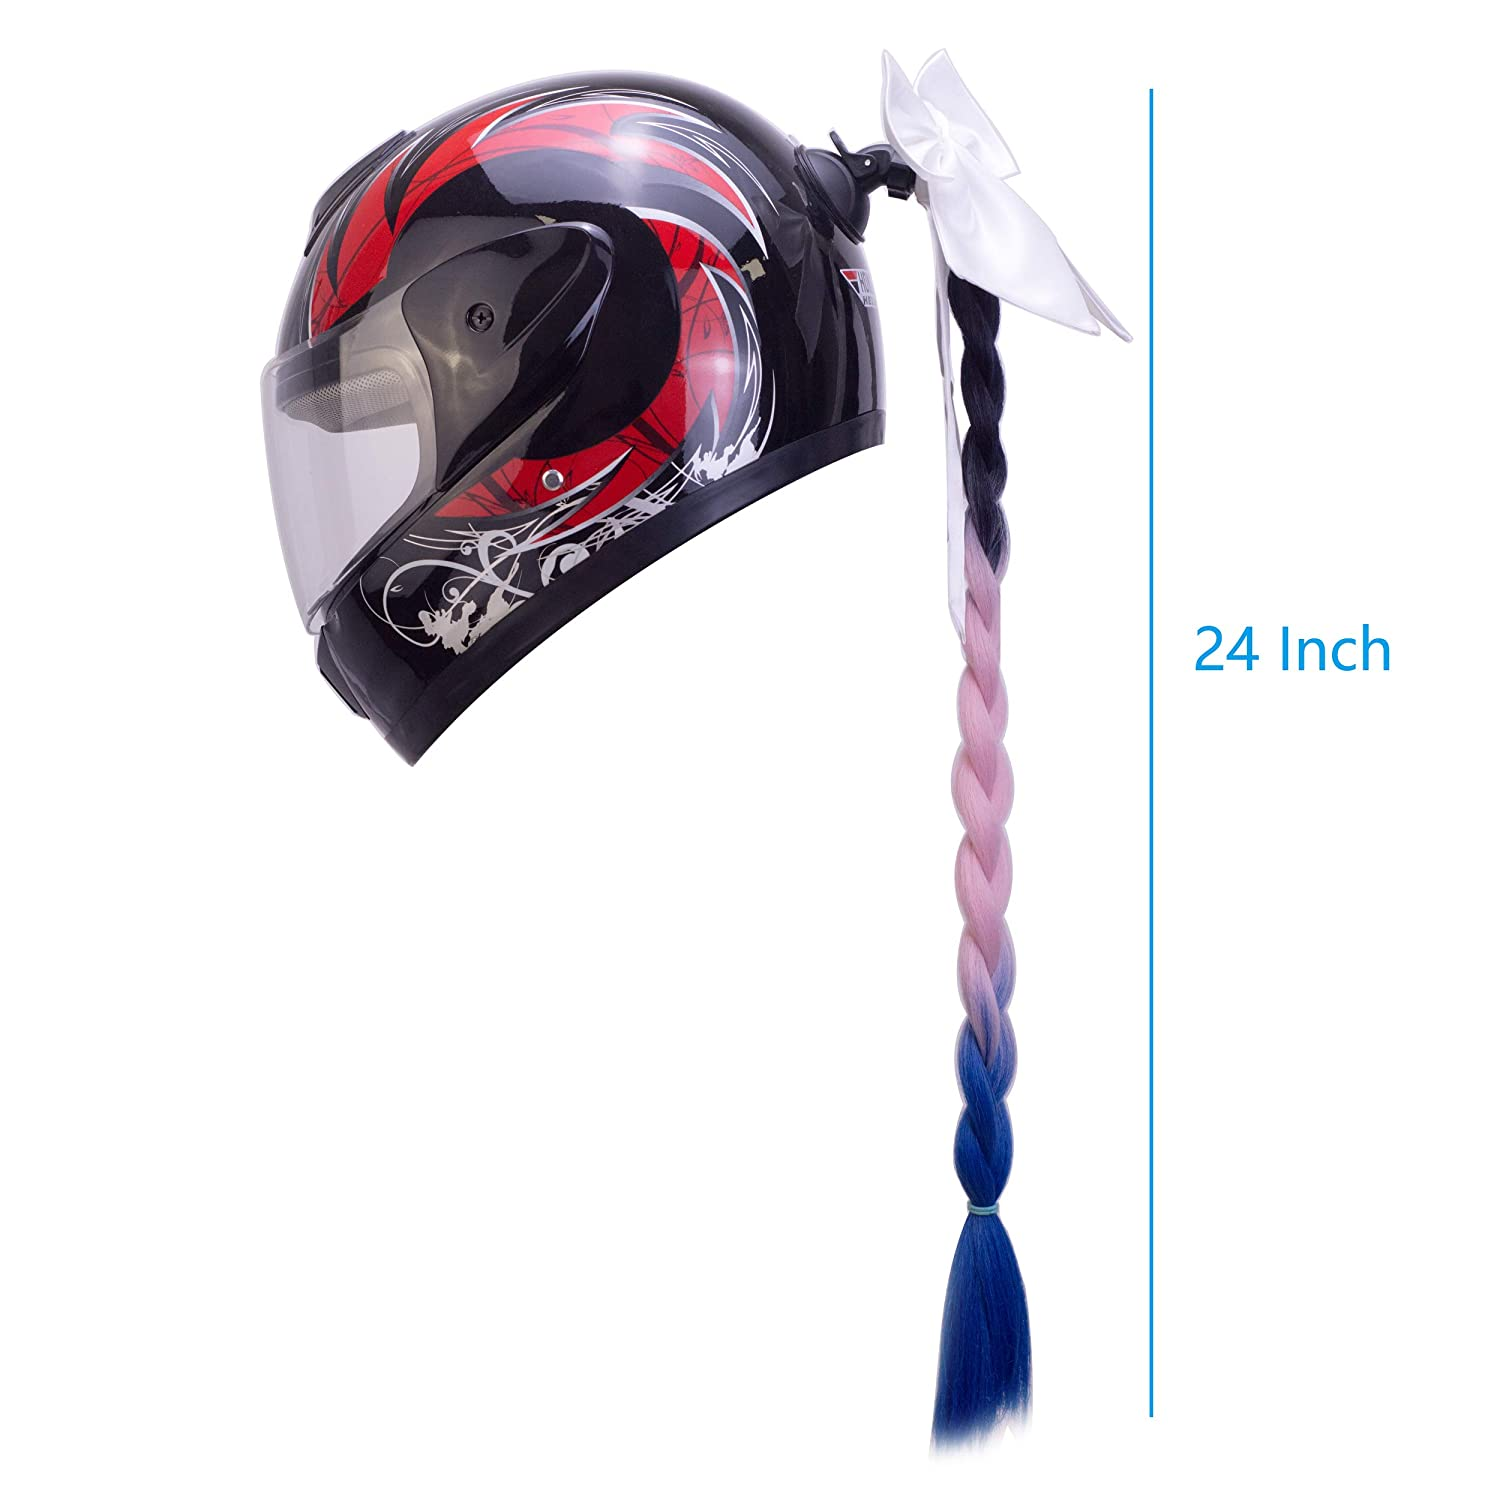 perfk Ladies /& Girls Motorcycle Accessory Pigtails with Removable Suction Cup Works On Motorbike Bicycle Batting Skate or Other Helmets Black